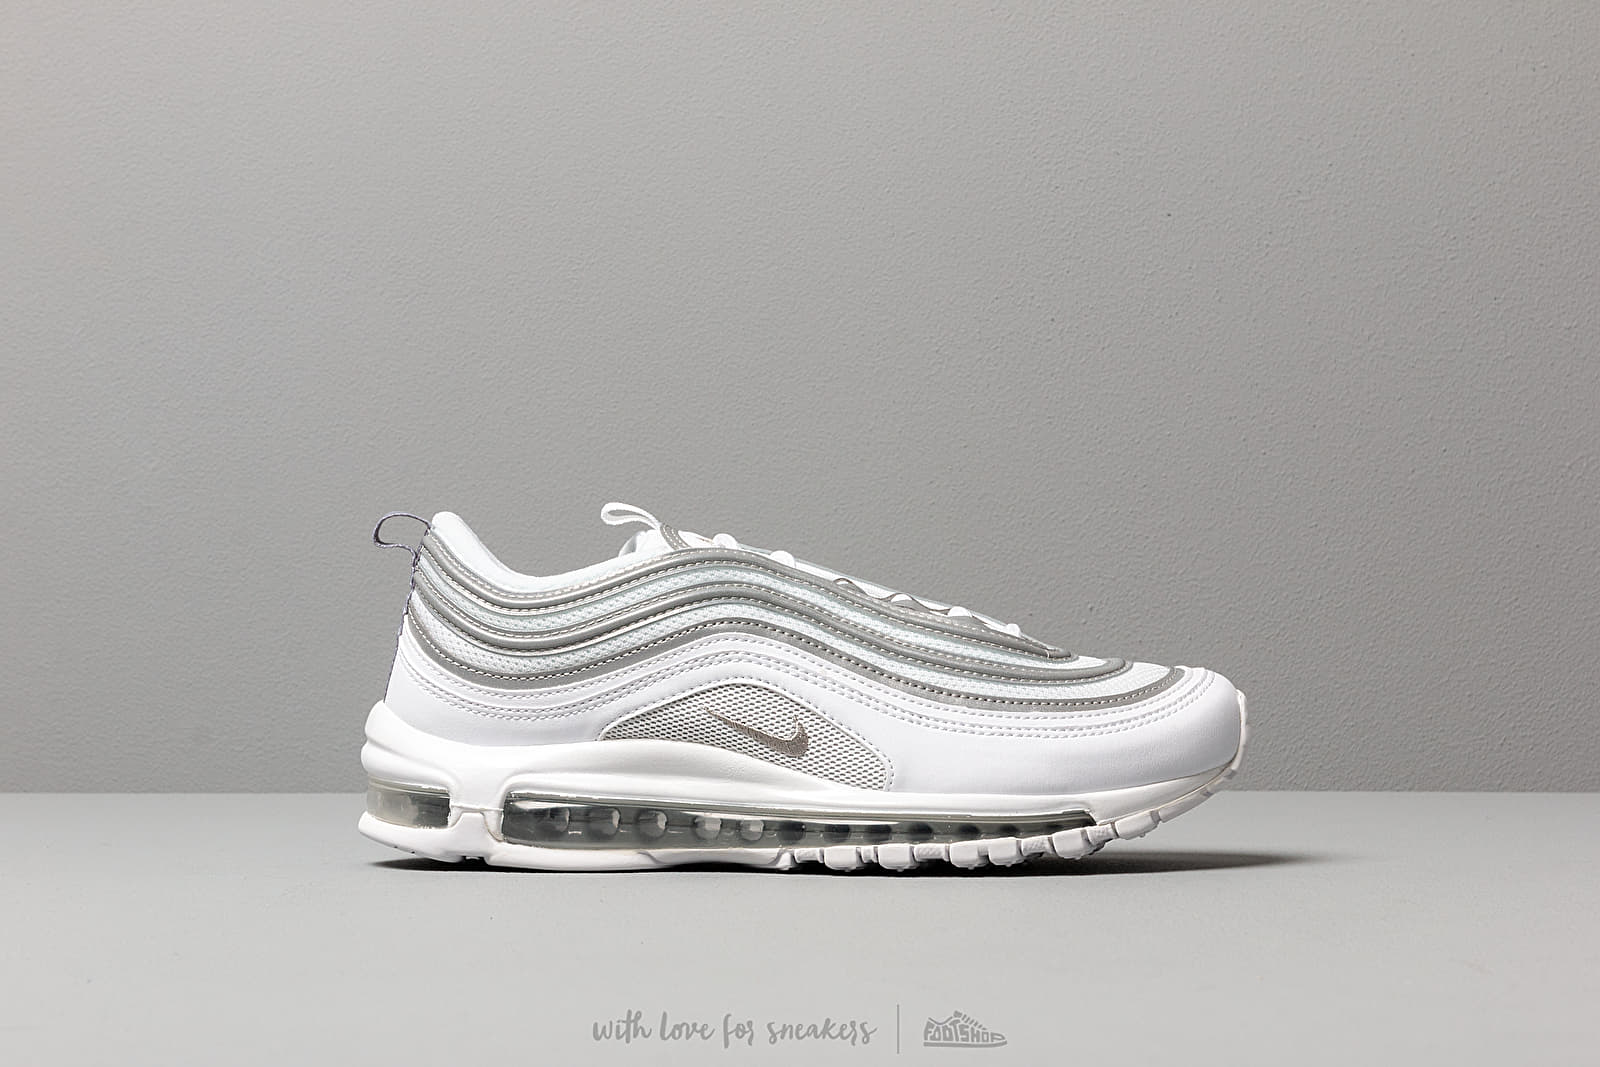 d4d061d170 Nike Air Max 97 White/ Reflect Silver-Wolf Grey at a great price 169